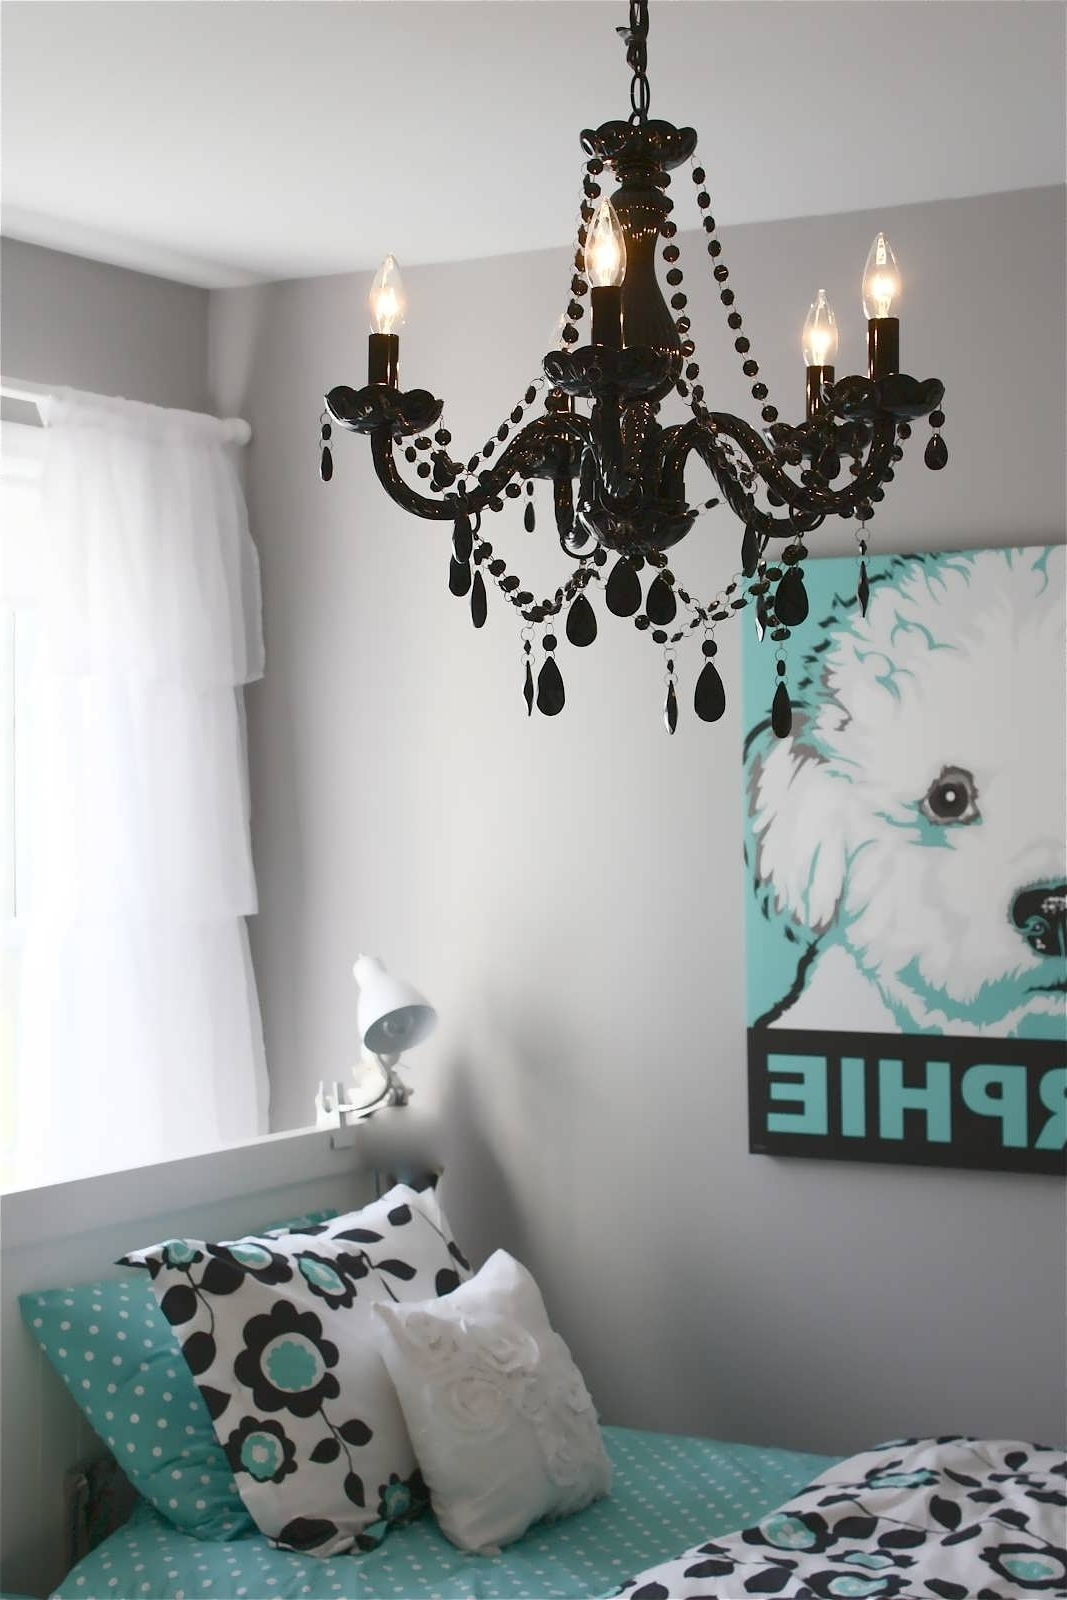 Turquoise Bedroom Chandeliers Intended For Well Known Chandelier : Lindsey Adelman Lighting Childrens Bedroom Lamps (View 4 of 15)